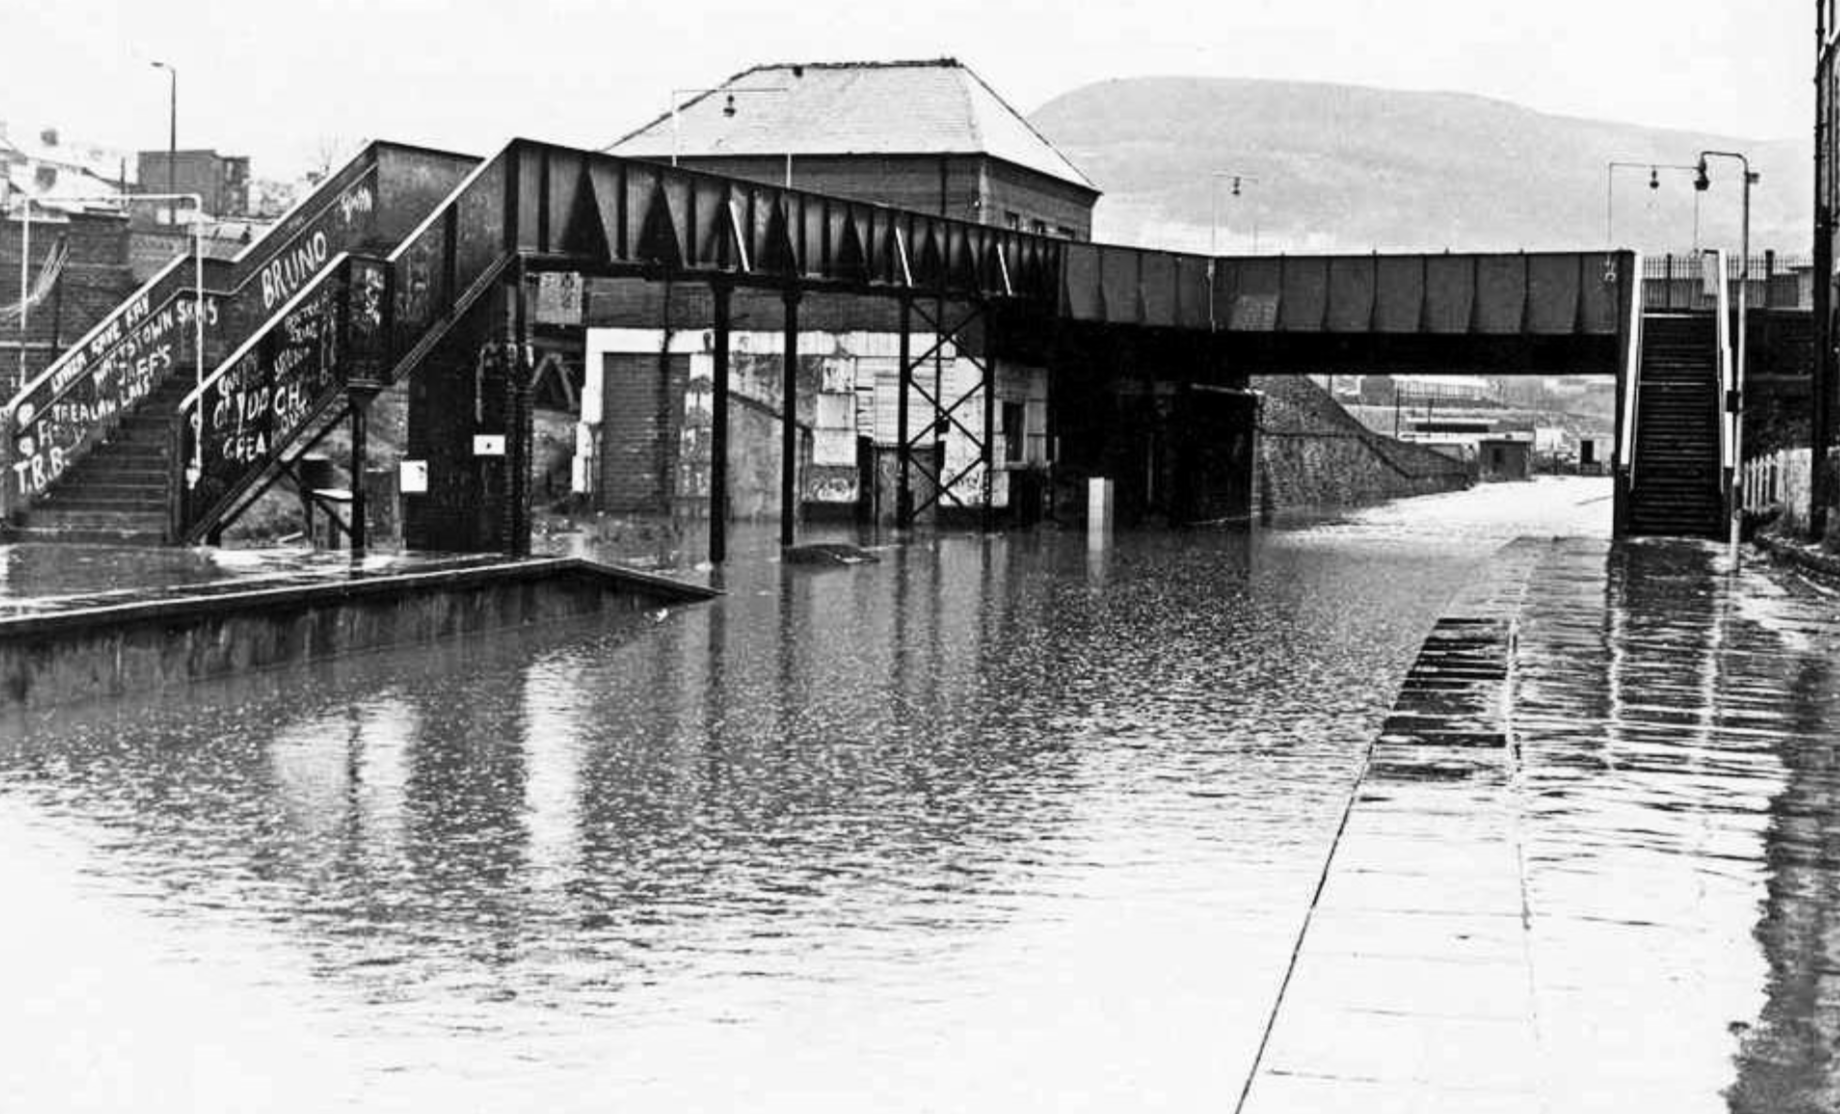 A remarkable photograph of Tonypandy Station taken during the floods of 1979.One wonders what the members of the 'Wattstown Skins' are doing now?  Photograph: origin unknown but used with thanks.